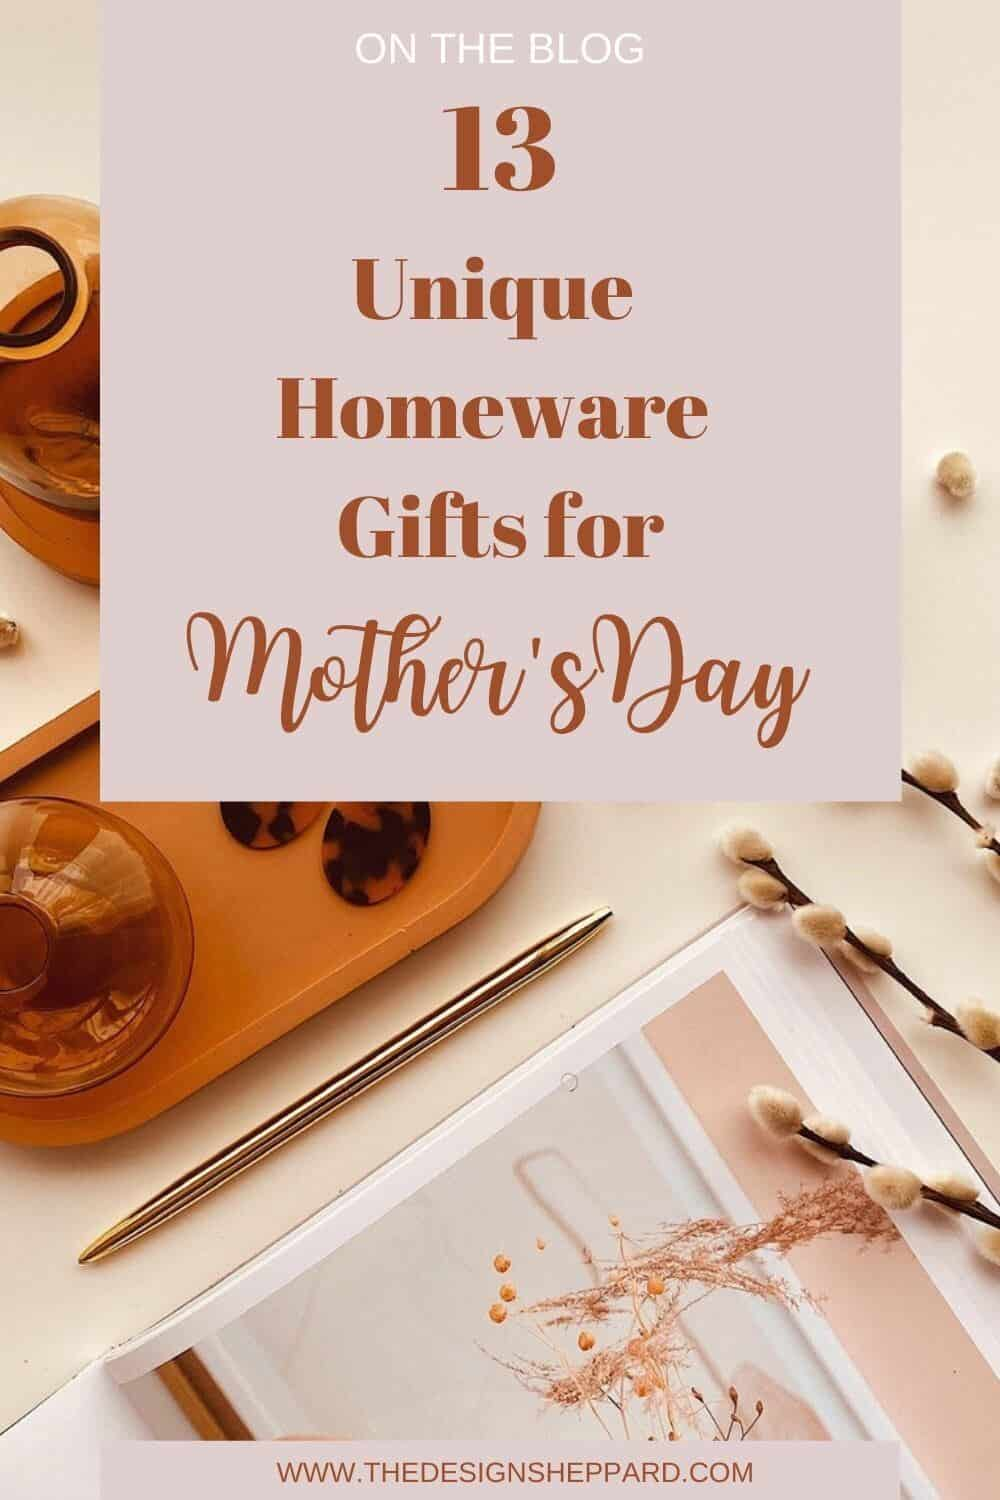 13 Unique Homeware gifts for Mother's Day